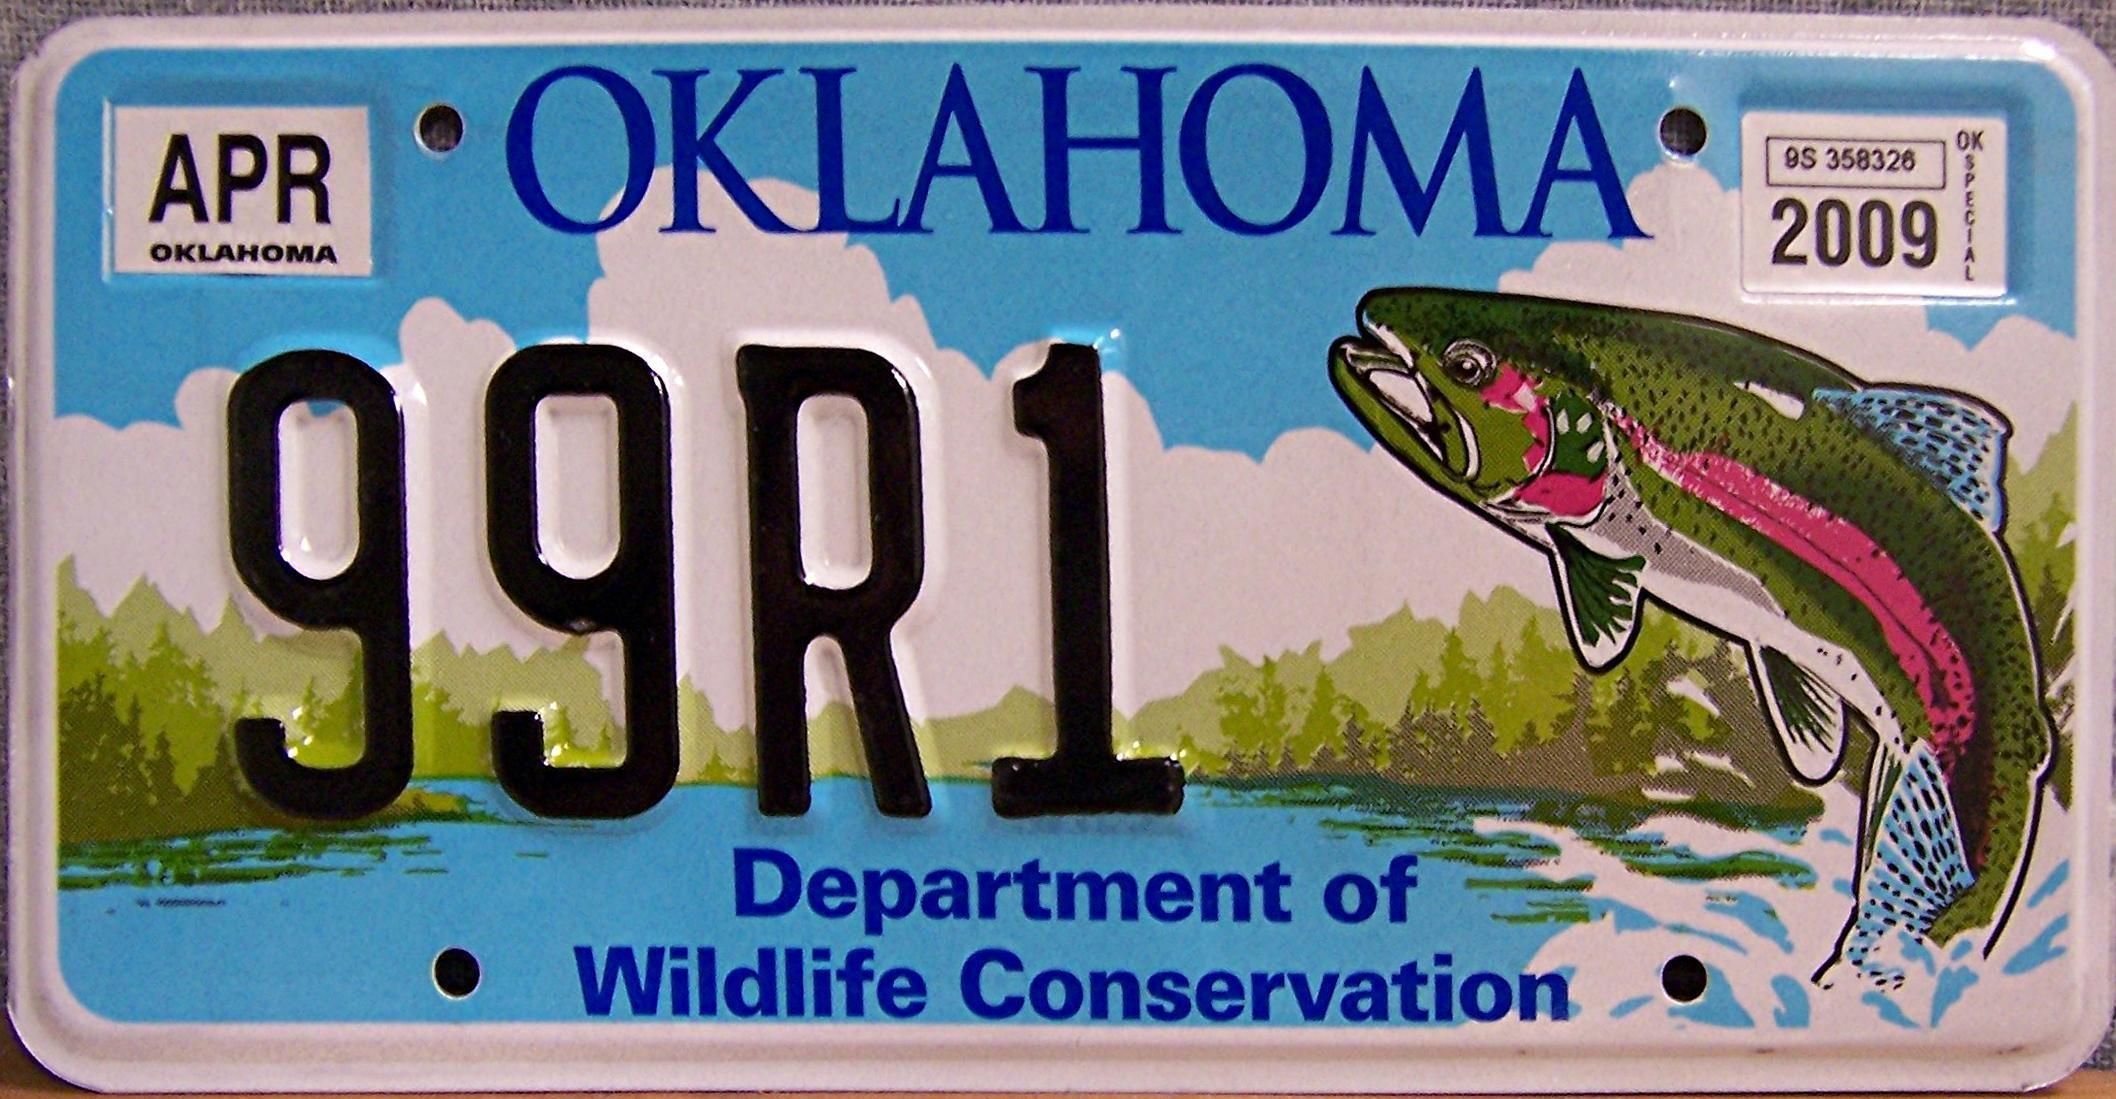 Oklahoma Department of Wildlife Conservation | Fishy License Plates